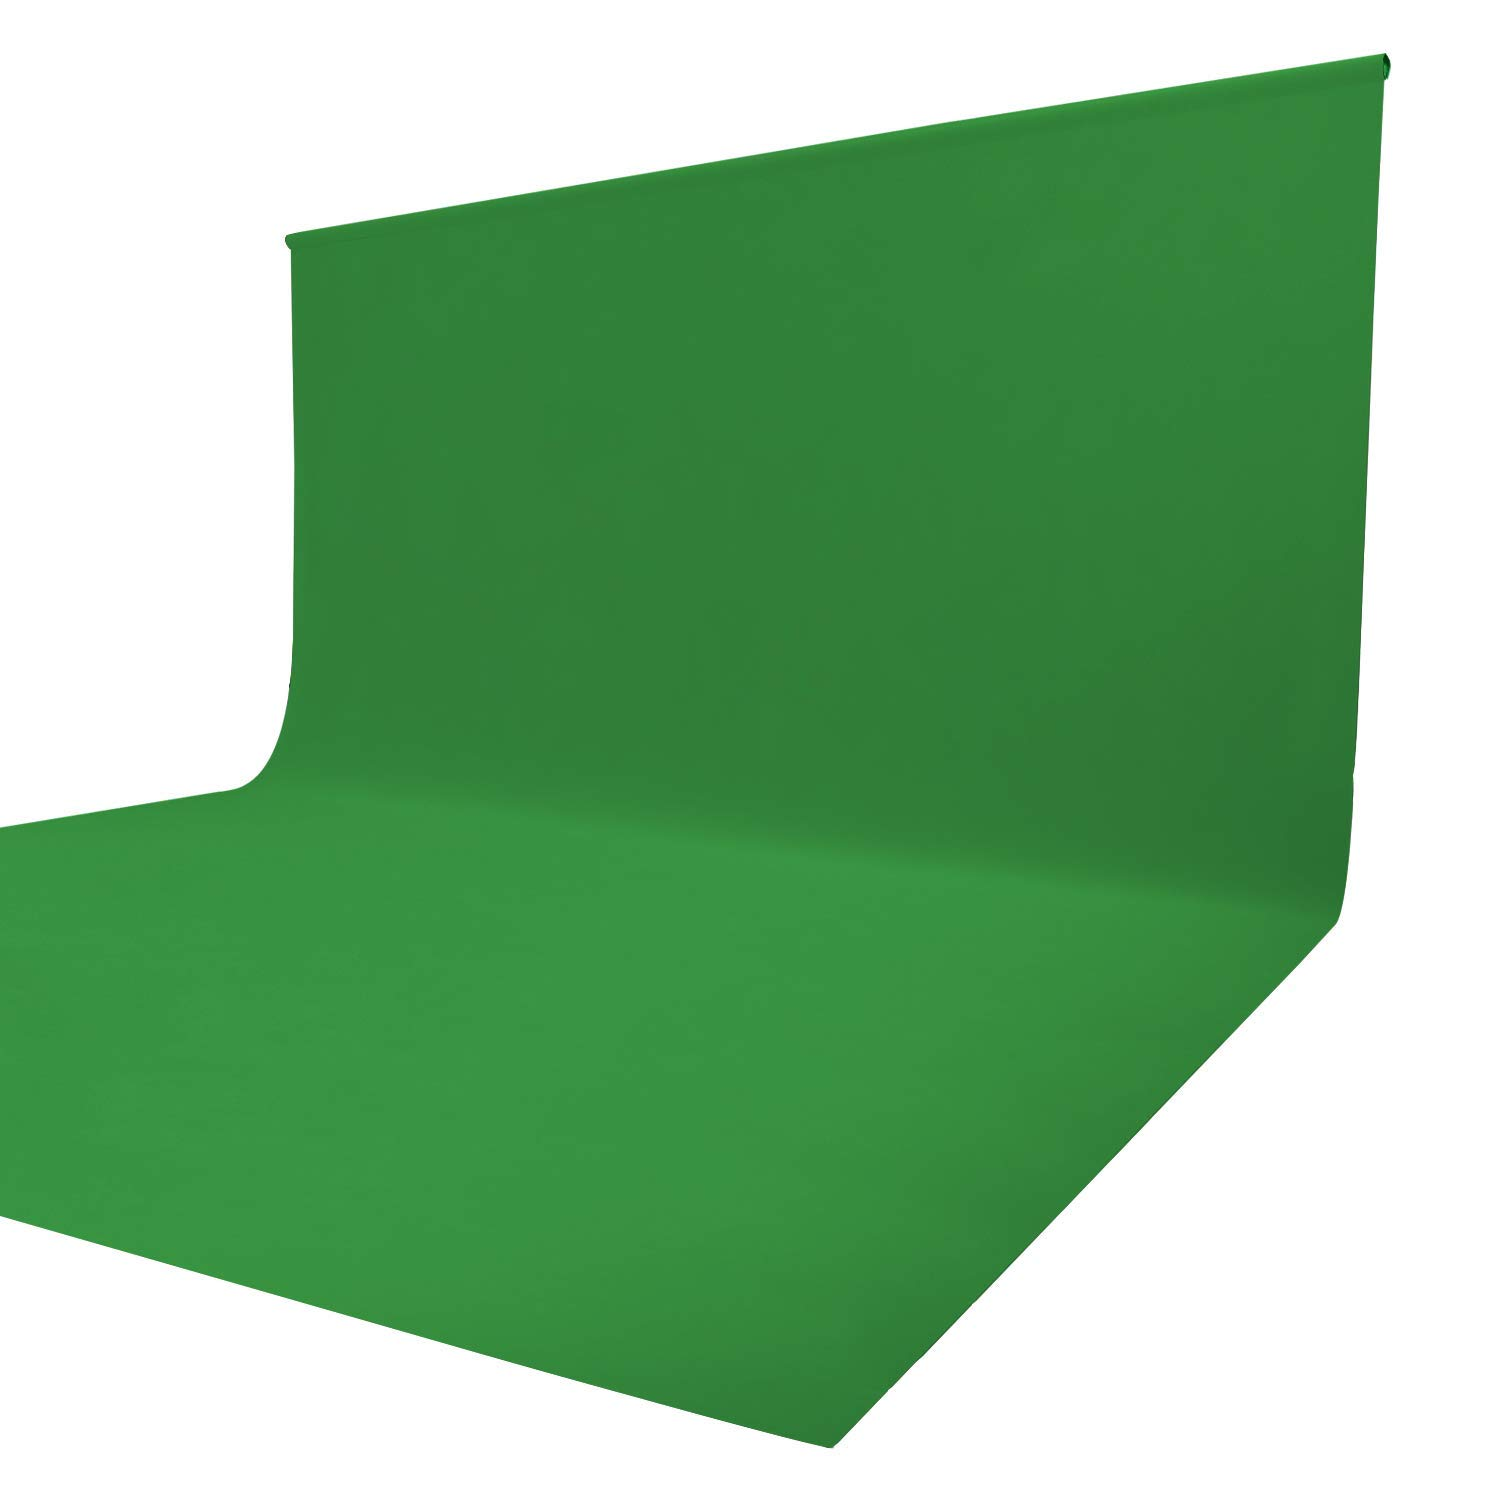 Issuntex 10X24 ft Green Background Muslin Backdrop,Photo Studio,Collapsible High Density Screen for Video Photography and Television(Green,10X24ft by ISSUNTEX